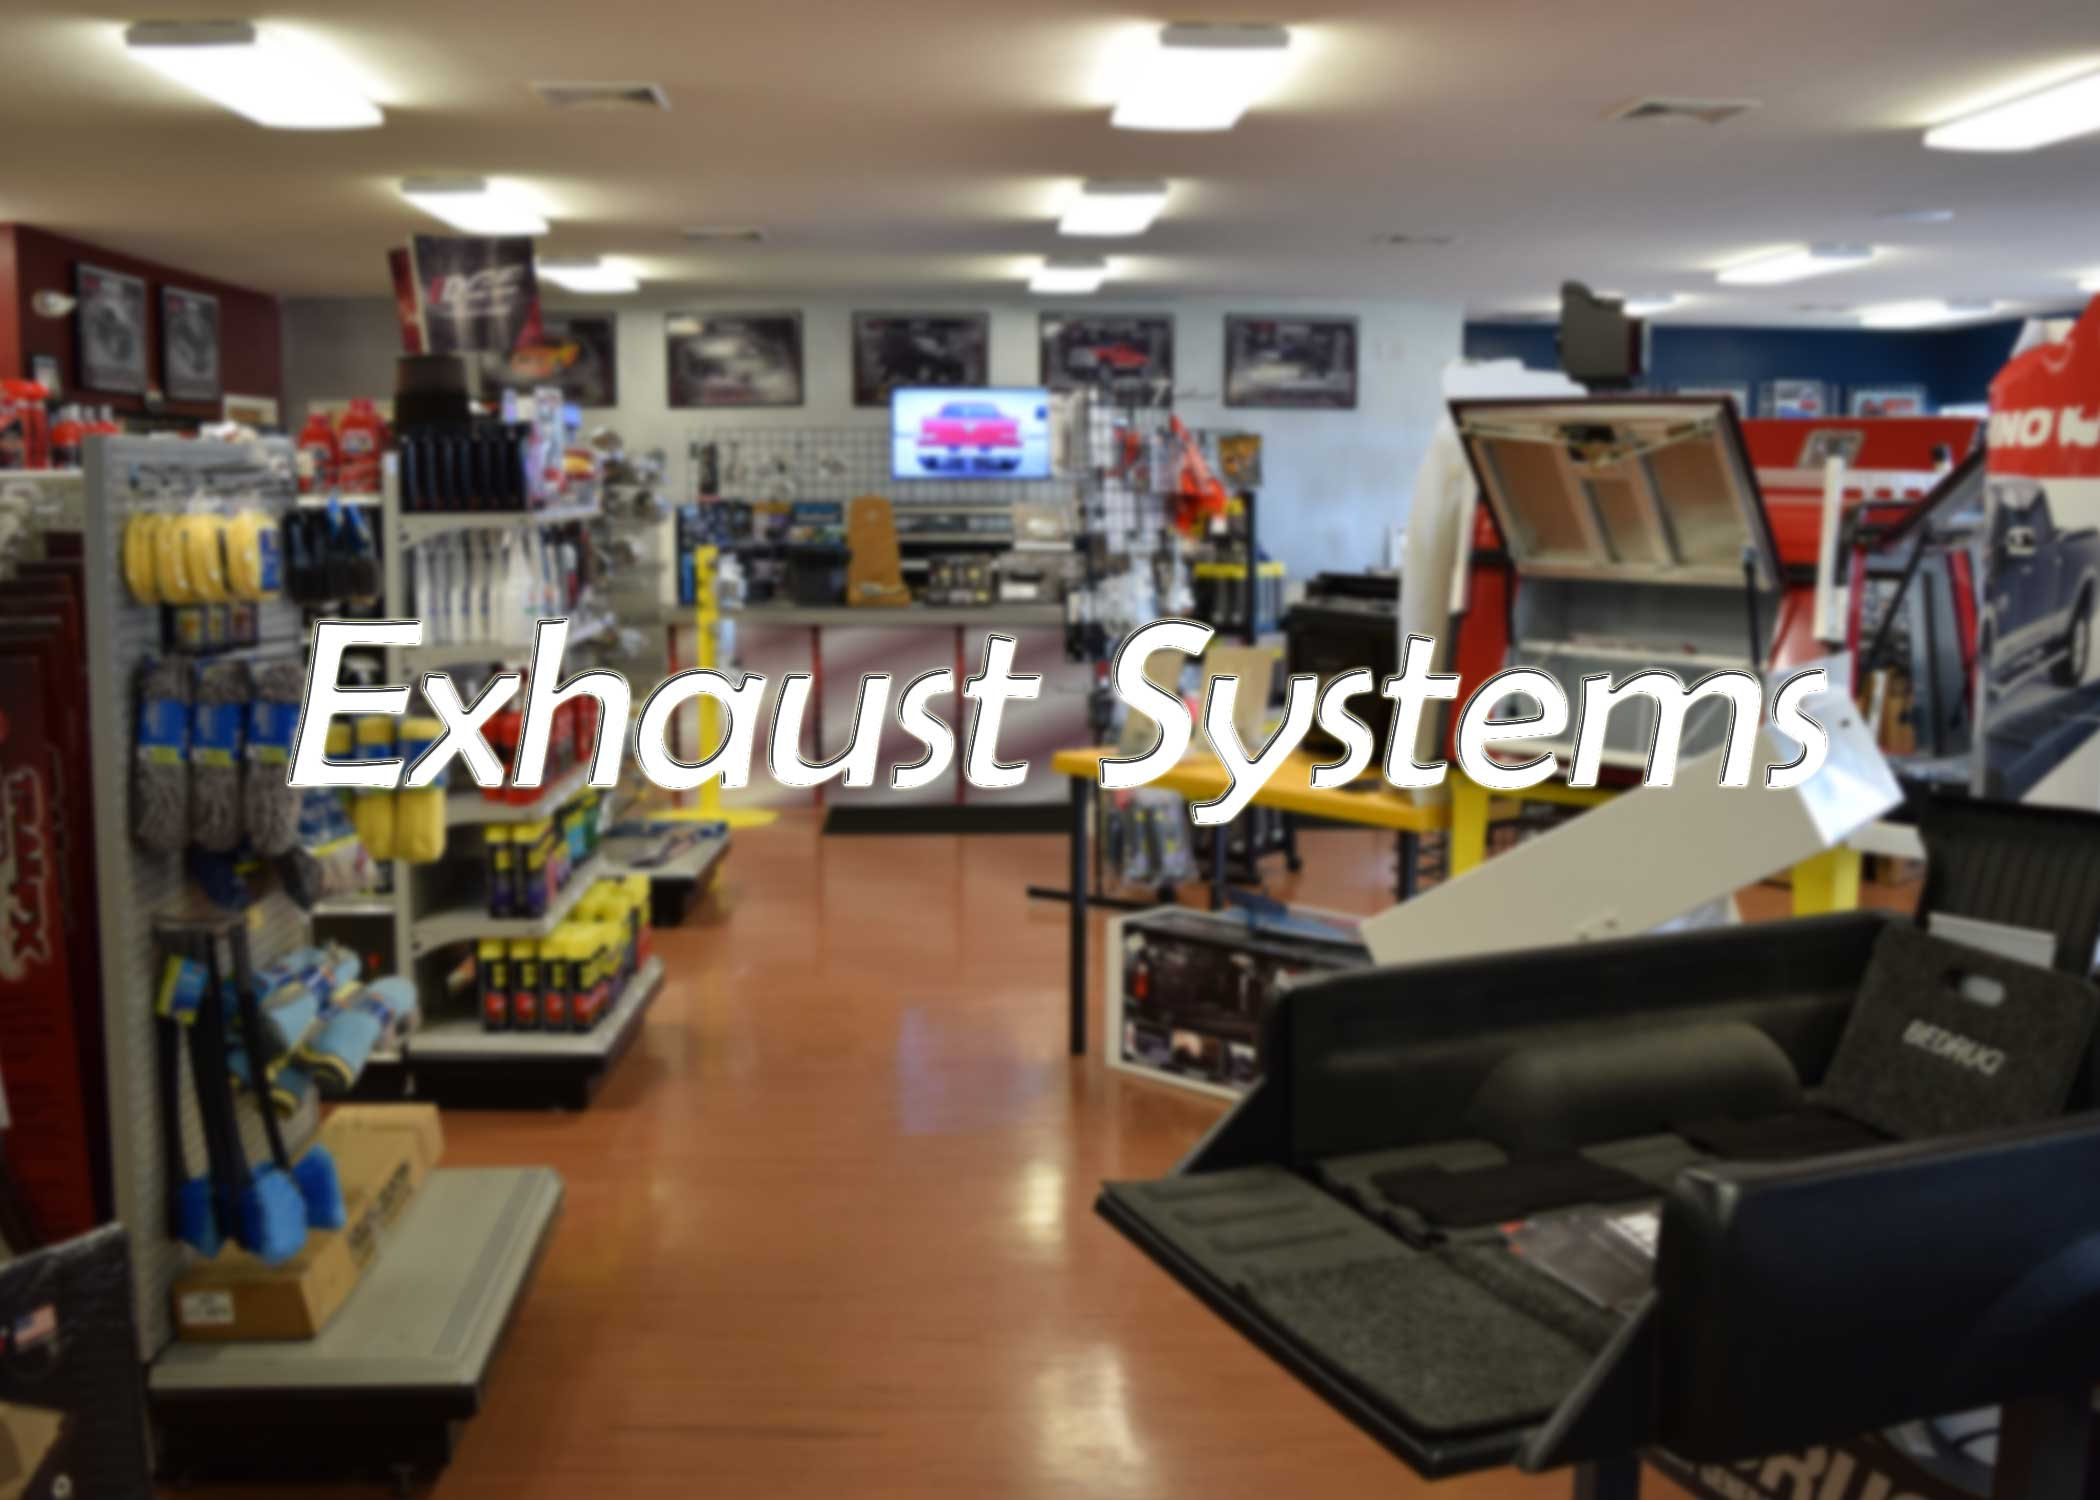 Performance Exhaust Systems at PSG truck exhaust tips truck exhaust kits truck exhaust pipes truck exhaust stacks truck exhaust parts truck exhaust sounds truck exhaust near me truck exhaust truck exhaust systems truck exhaust accessories truck exhaust kits reviews chevy truck exhaust kits types of truck exhaust systems